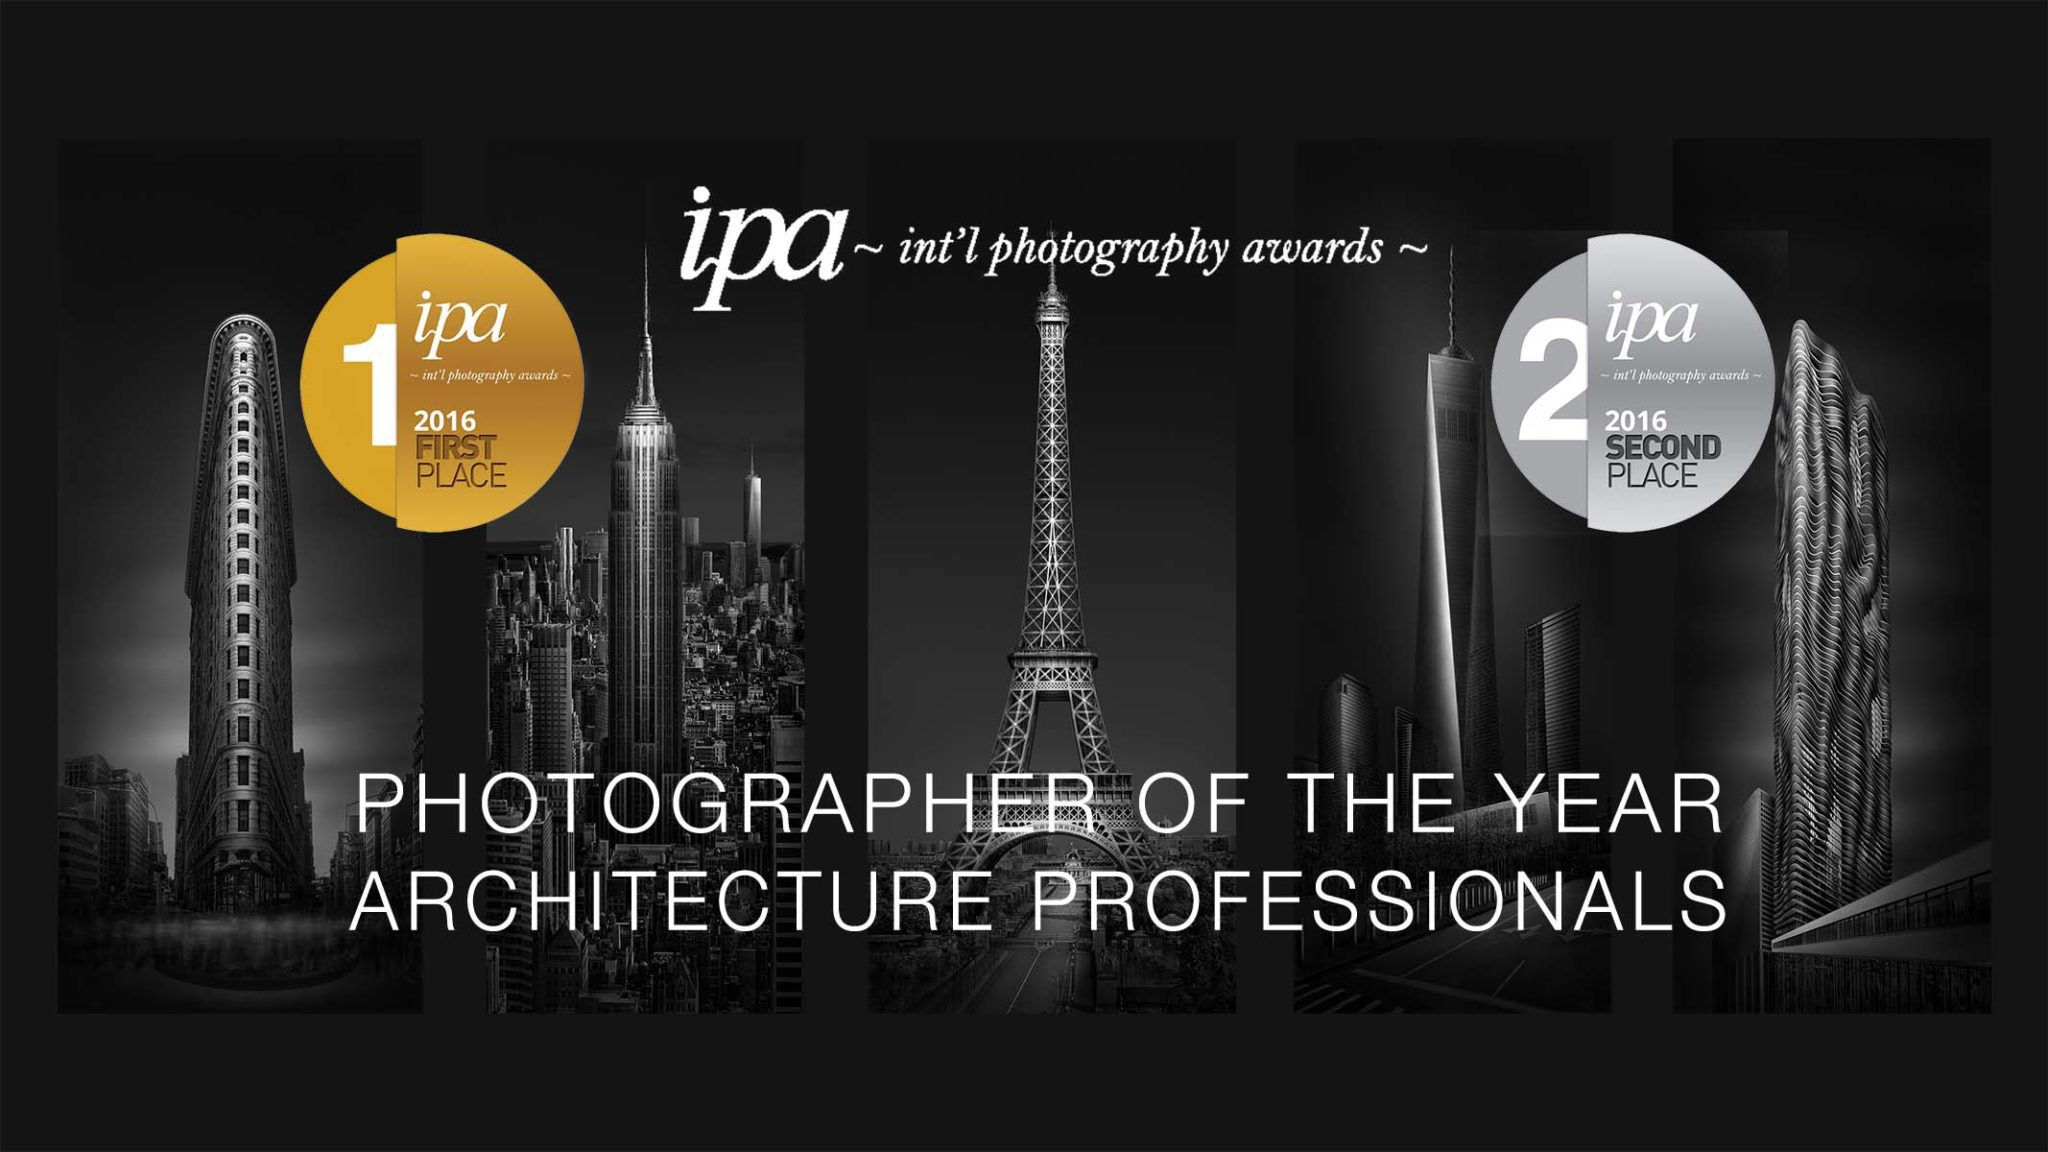 Julia Anna Gospodarou - IPA 2016 Photographer of the Year Architecture Professionals International Photography Awards